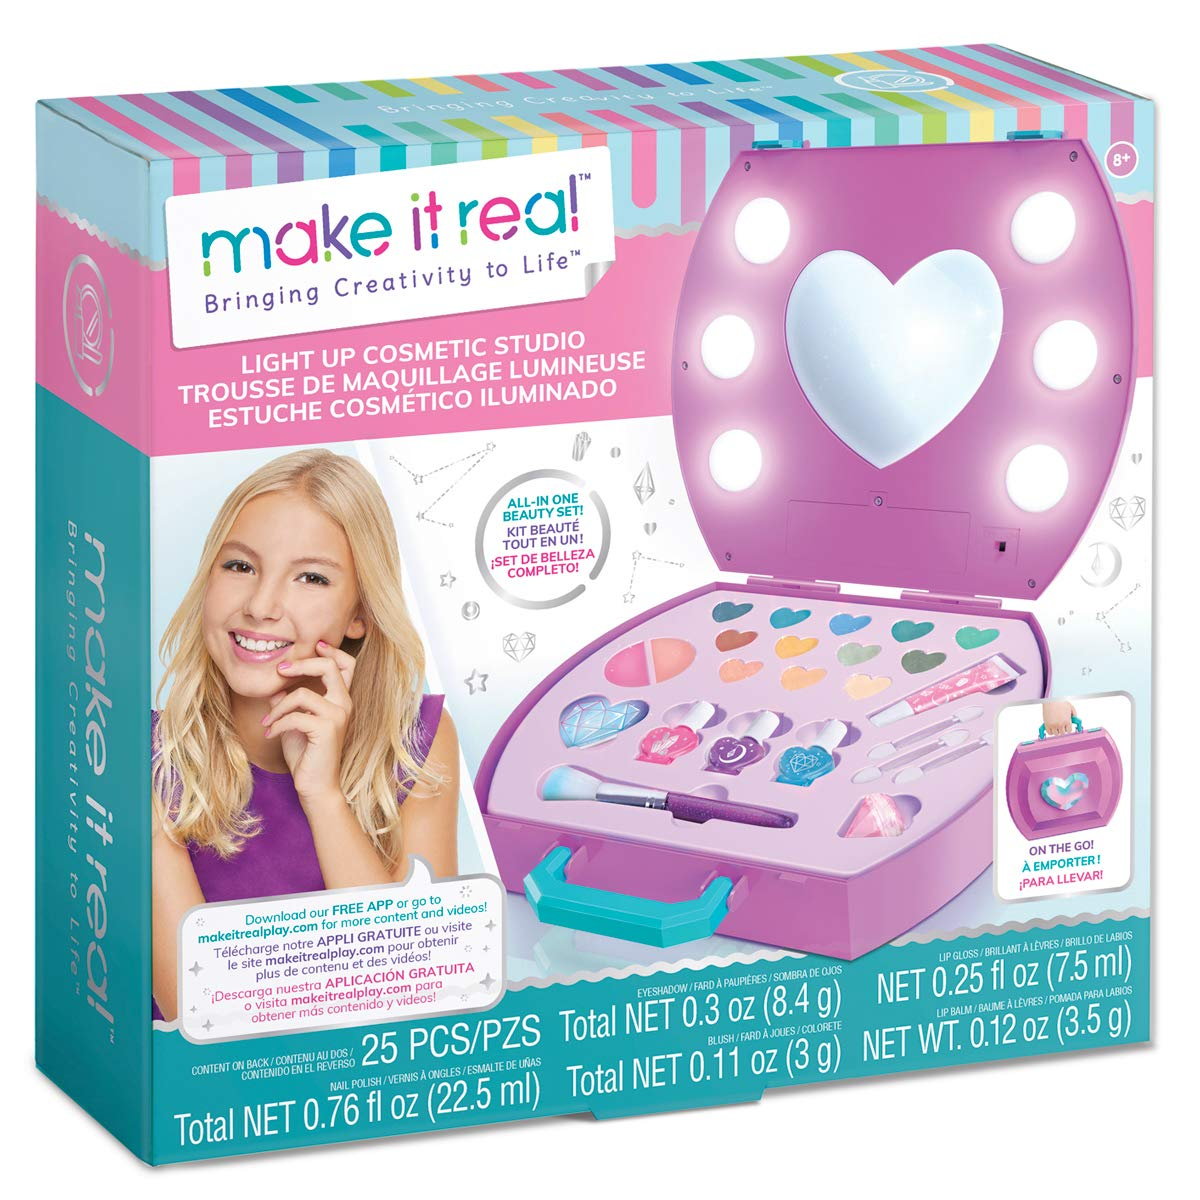 Make It Real - Light-Up Cosmetic Studio - Kids Makeup Case with Mirror and Lights for Girls and Tweens - Includes Eyeshadow, Nail Polish, Blush, Lip Gloss, Nail File, Makeup Brushes by Make It Real